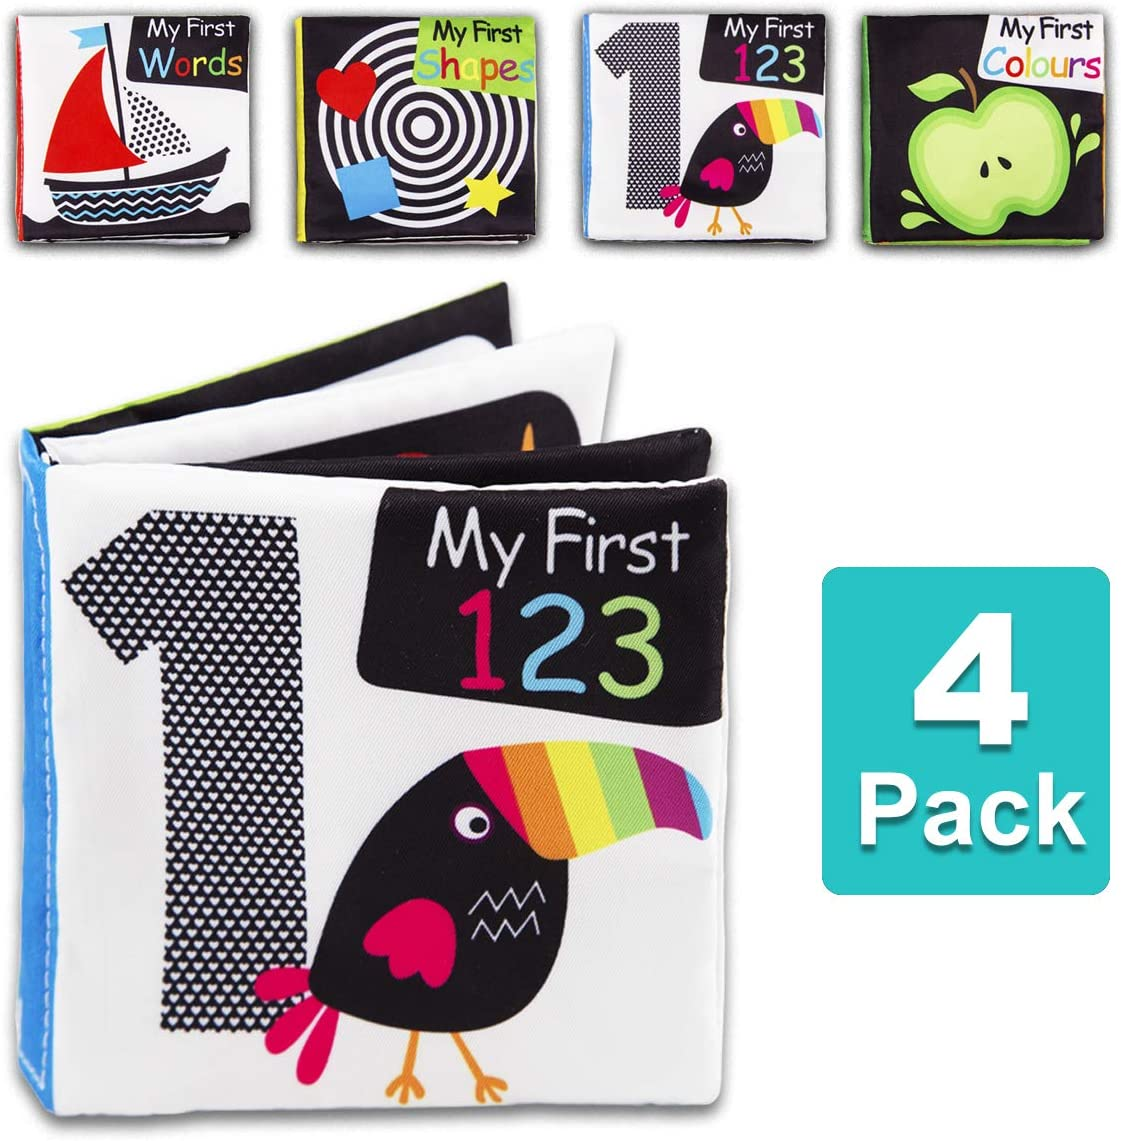 Words LinLin Baby First Soft Activity Cloth Book Set High Contrast Black and White Interactive Crinkle Soft Book Bundle for Infant Shapes Colors Baby Early Education for Brain Development with Numbers